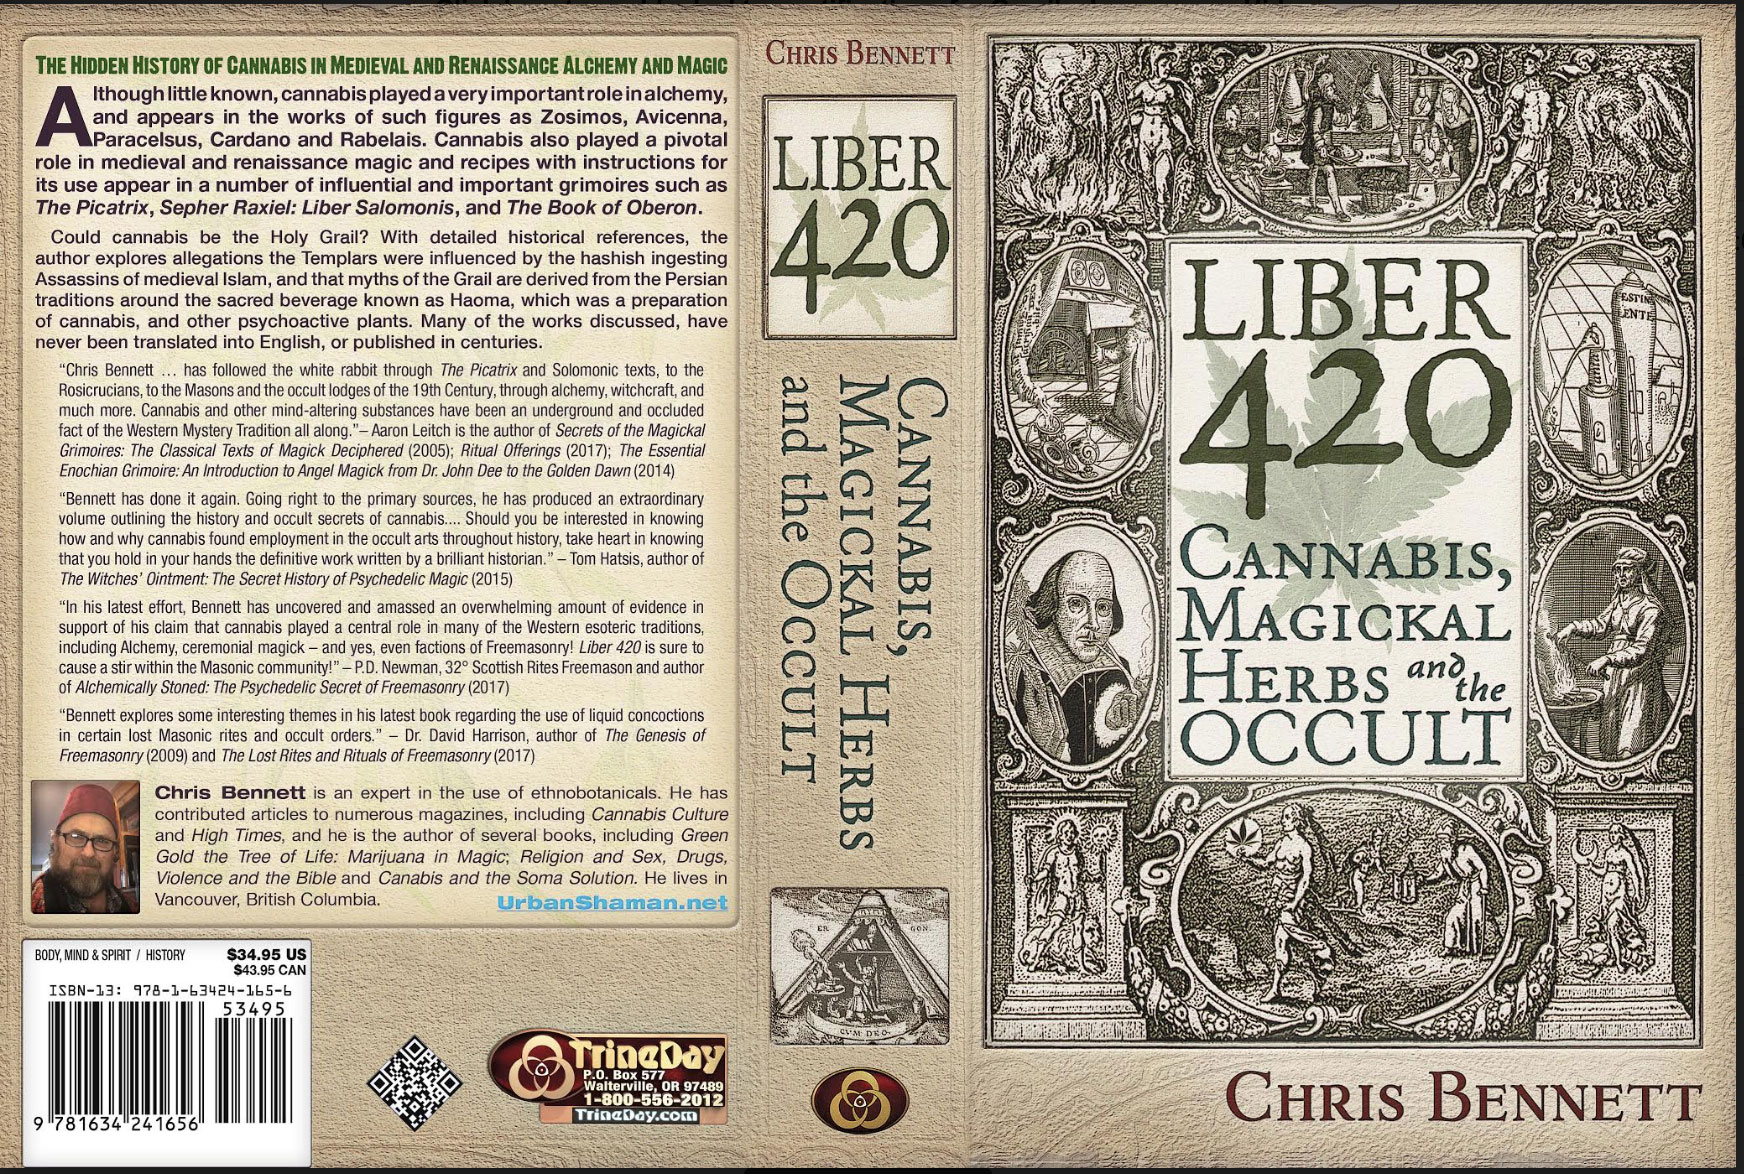 Liber 420: Cannabis, Magickal Herbs and the Occult - Graham Hancock